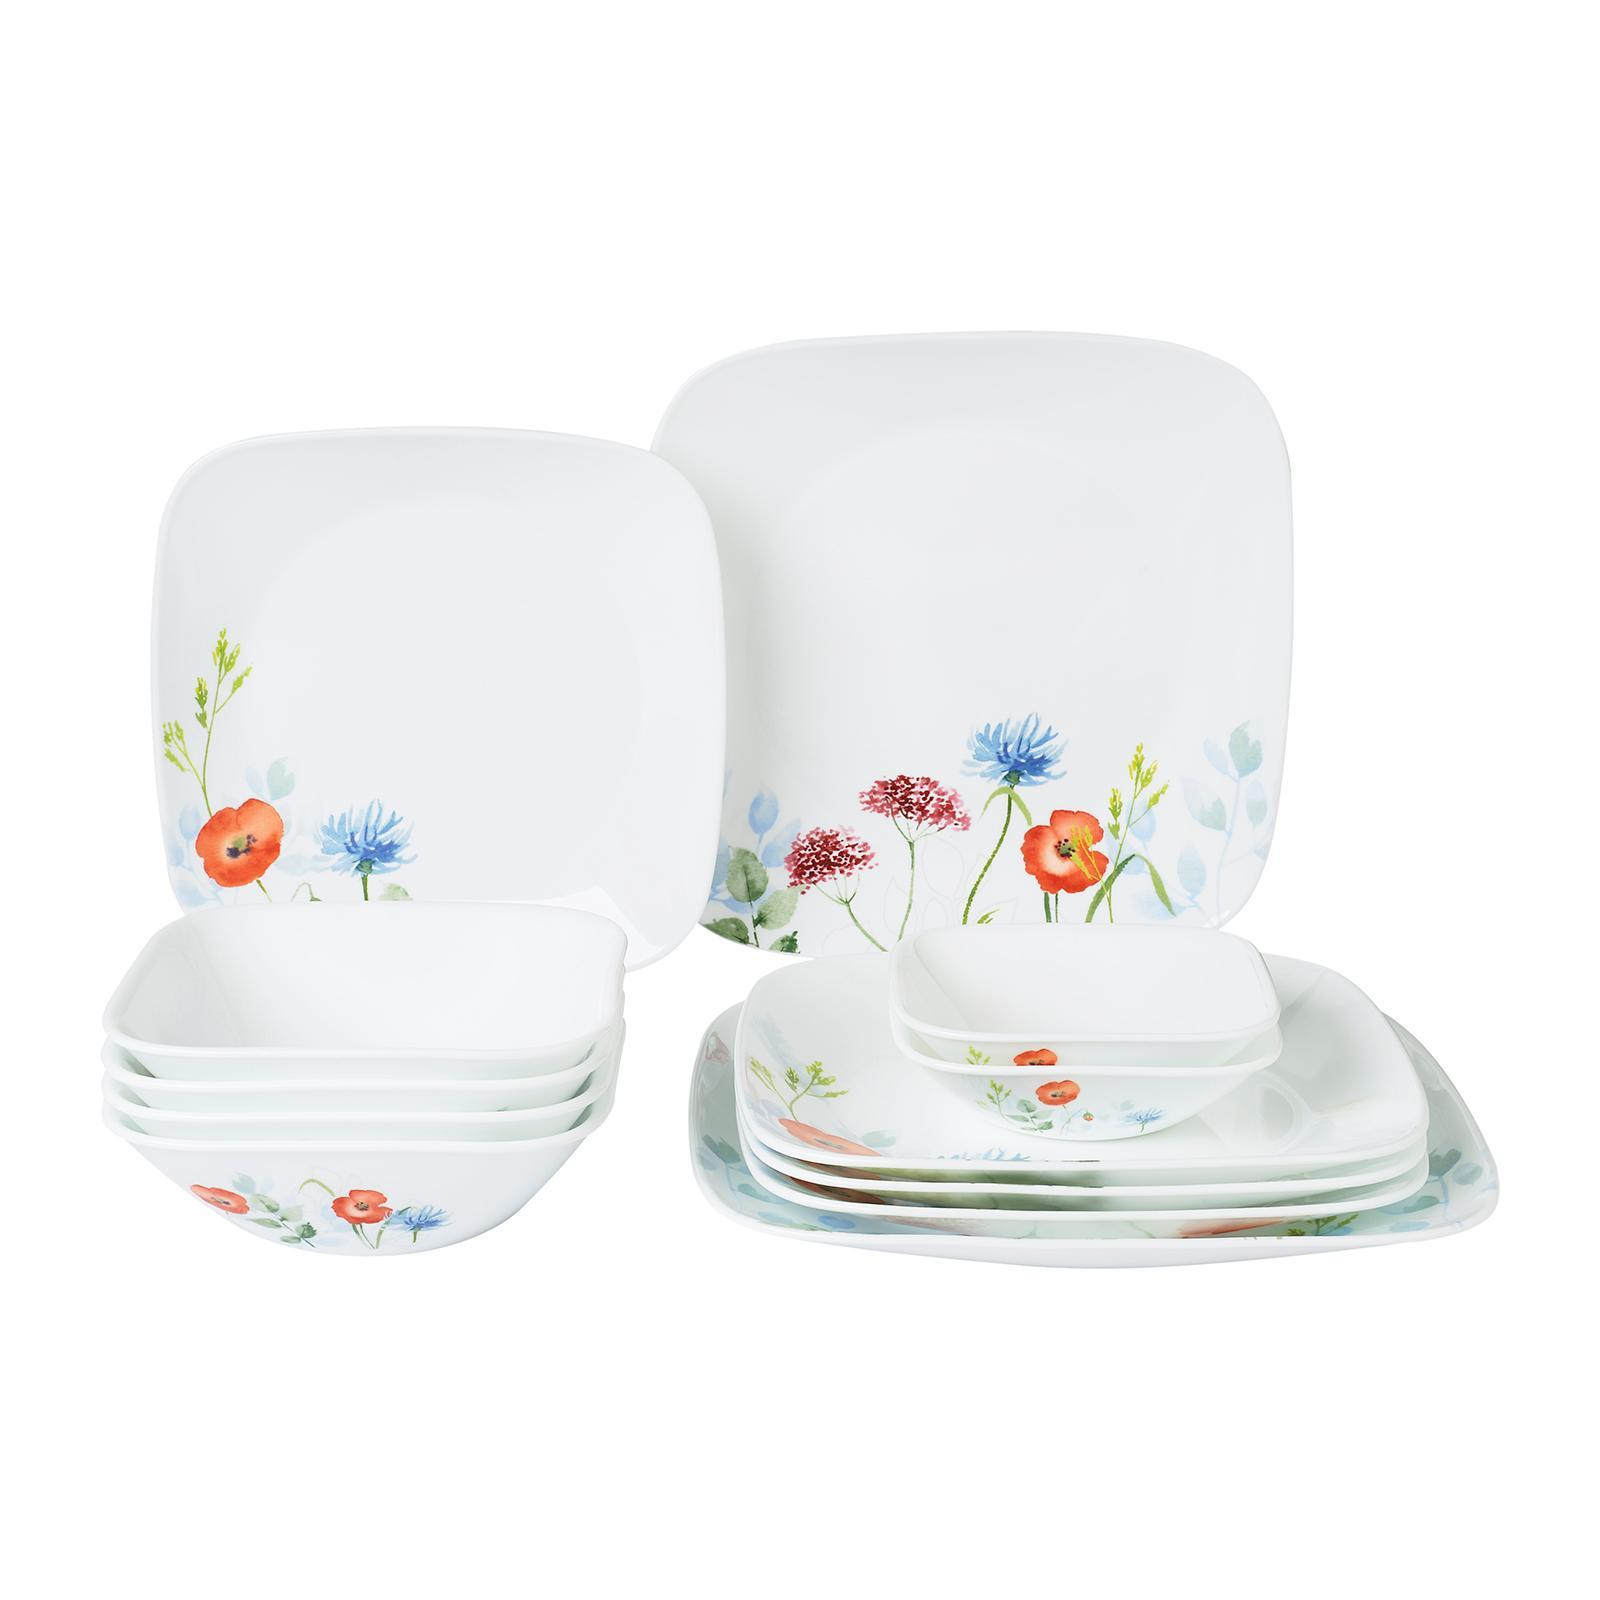 Corelle 12 PCS Square Round Dinner Set (Design: Daisy Field)